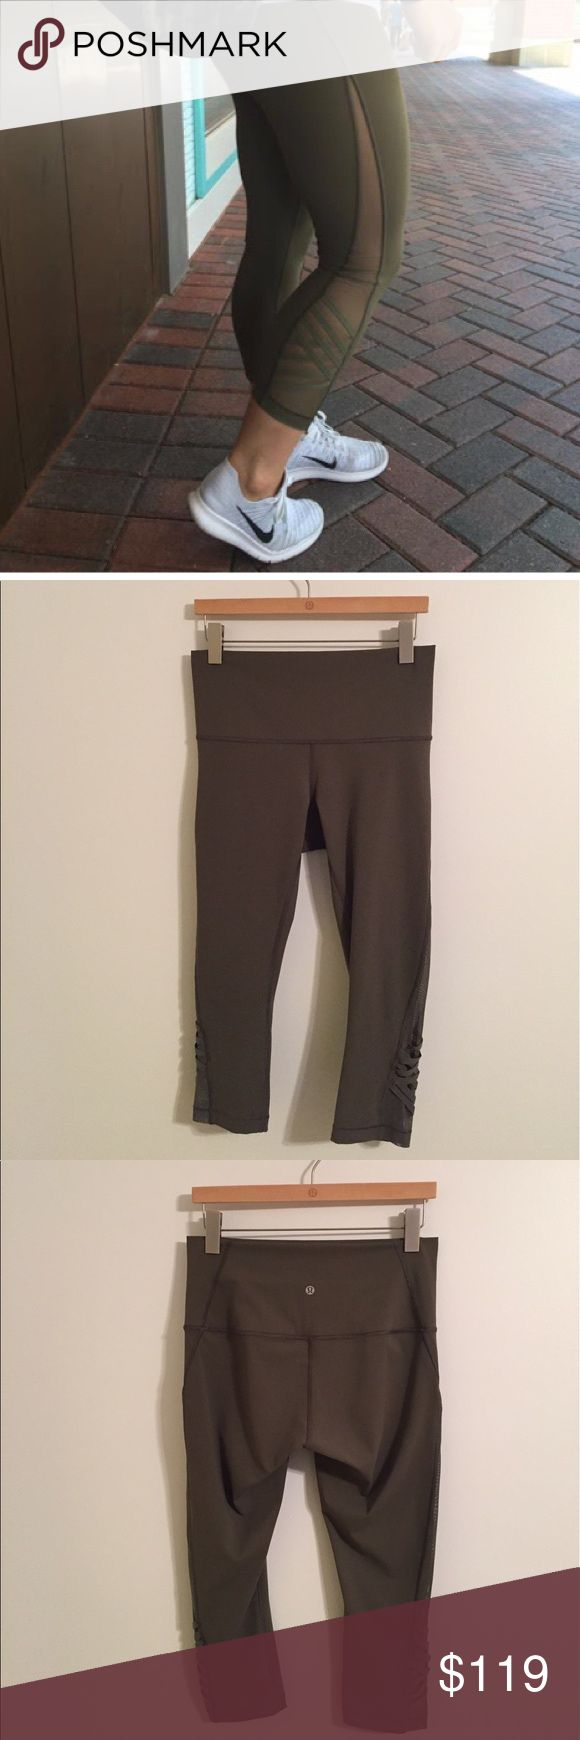 Lululemon Minimalist Crop Lululemon Minimalist Crop in Fatigue Green, size 10, excellent condition with no flaws(meaning no piling/stains/rips/seam damages/odors/holes/etc). Super cute!!! Rip tag still attached. Bundle to save 10% off ❤️ lululemon athletica Pants Capris